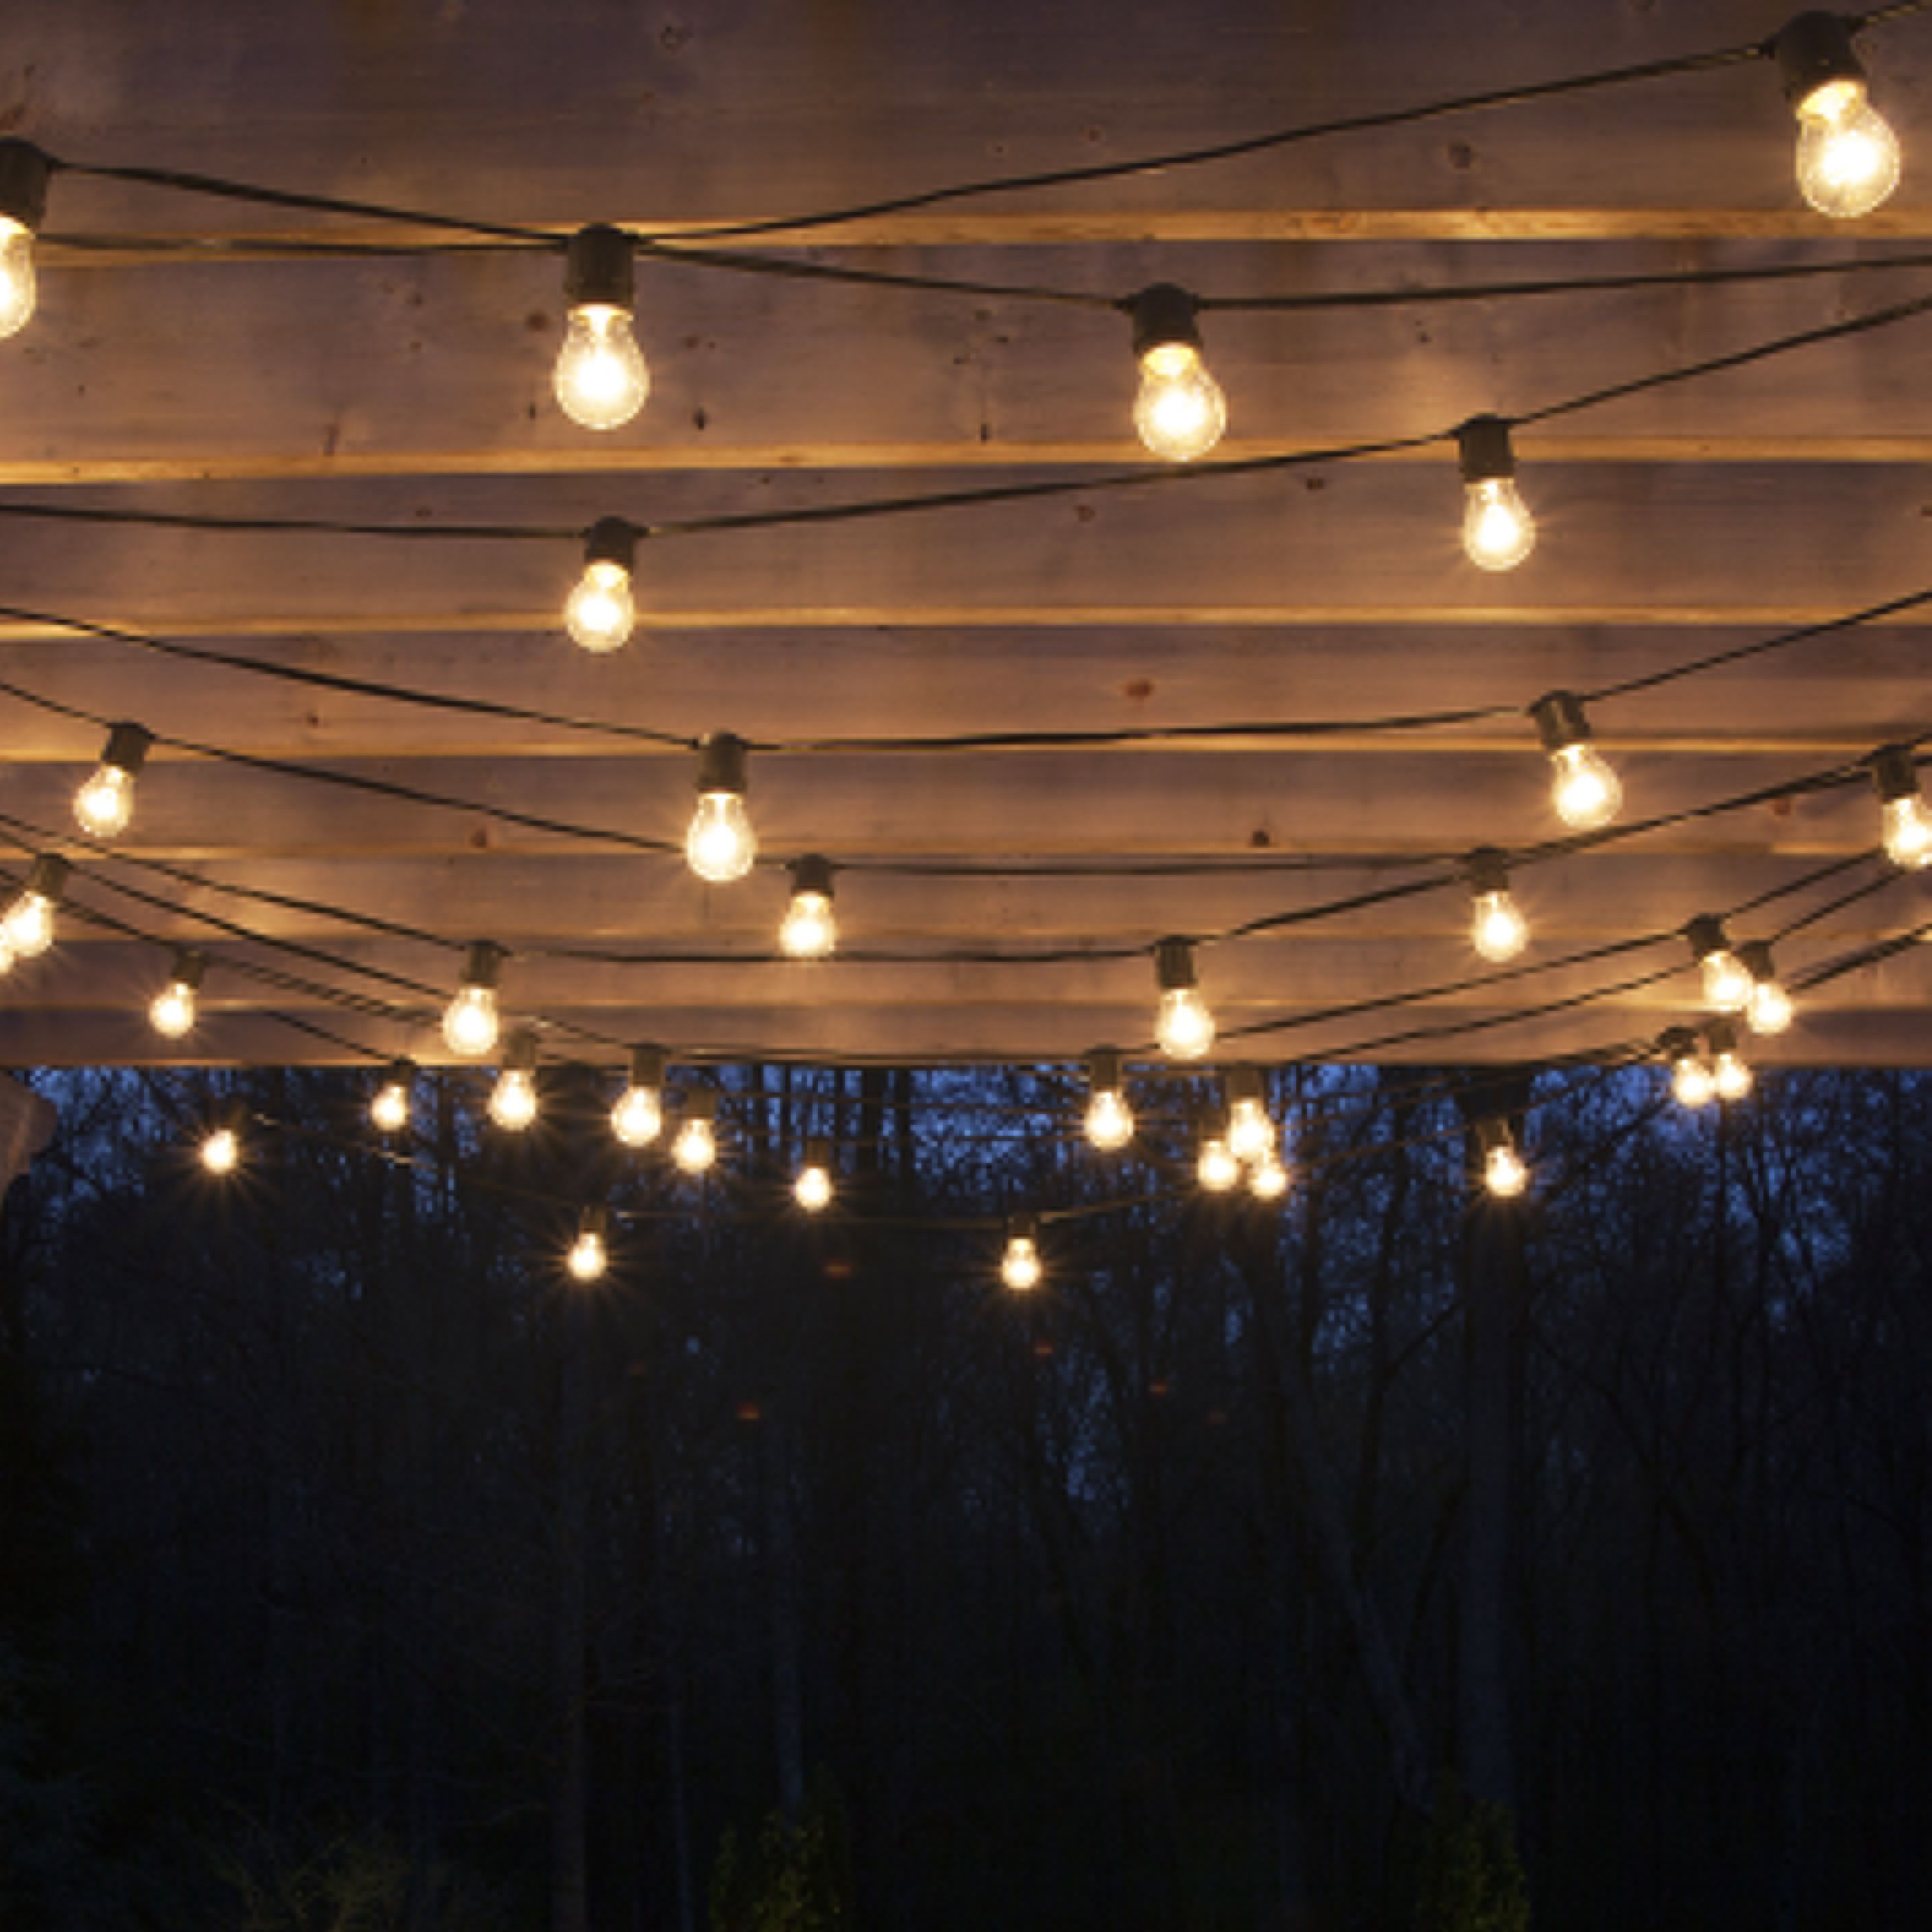 Patio Lighting, Pergolas And Patios Throughout Most Recent Outdoor Hanging Garden Lights (View 13 of 20)